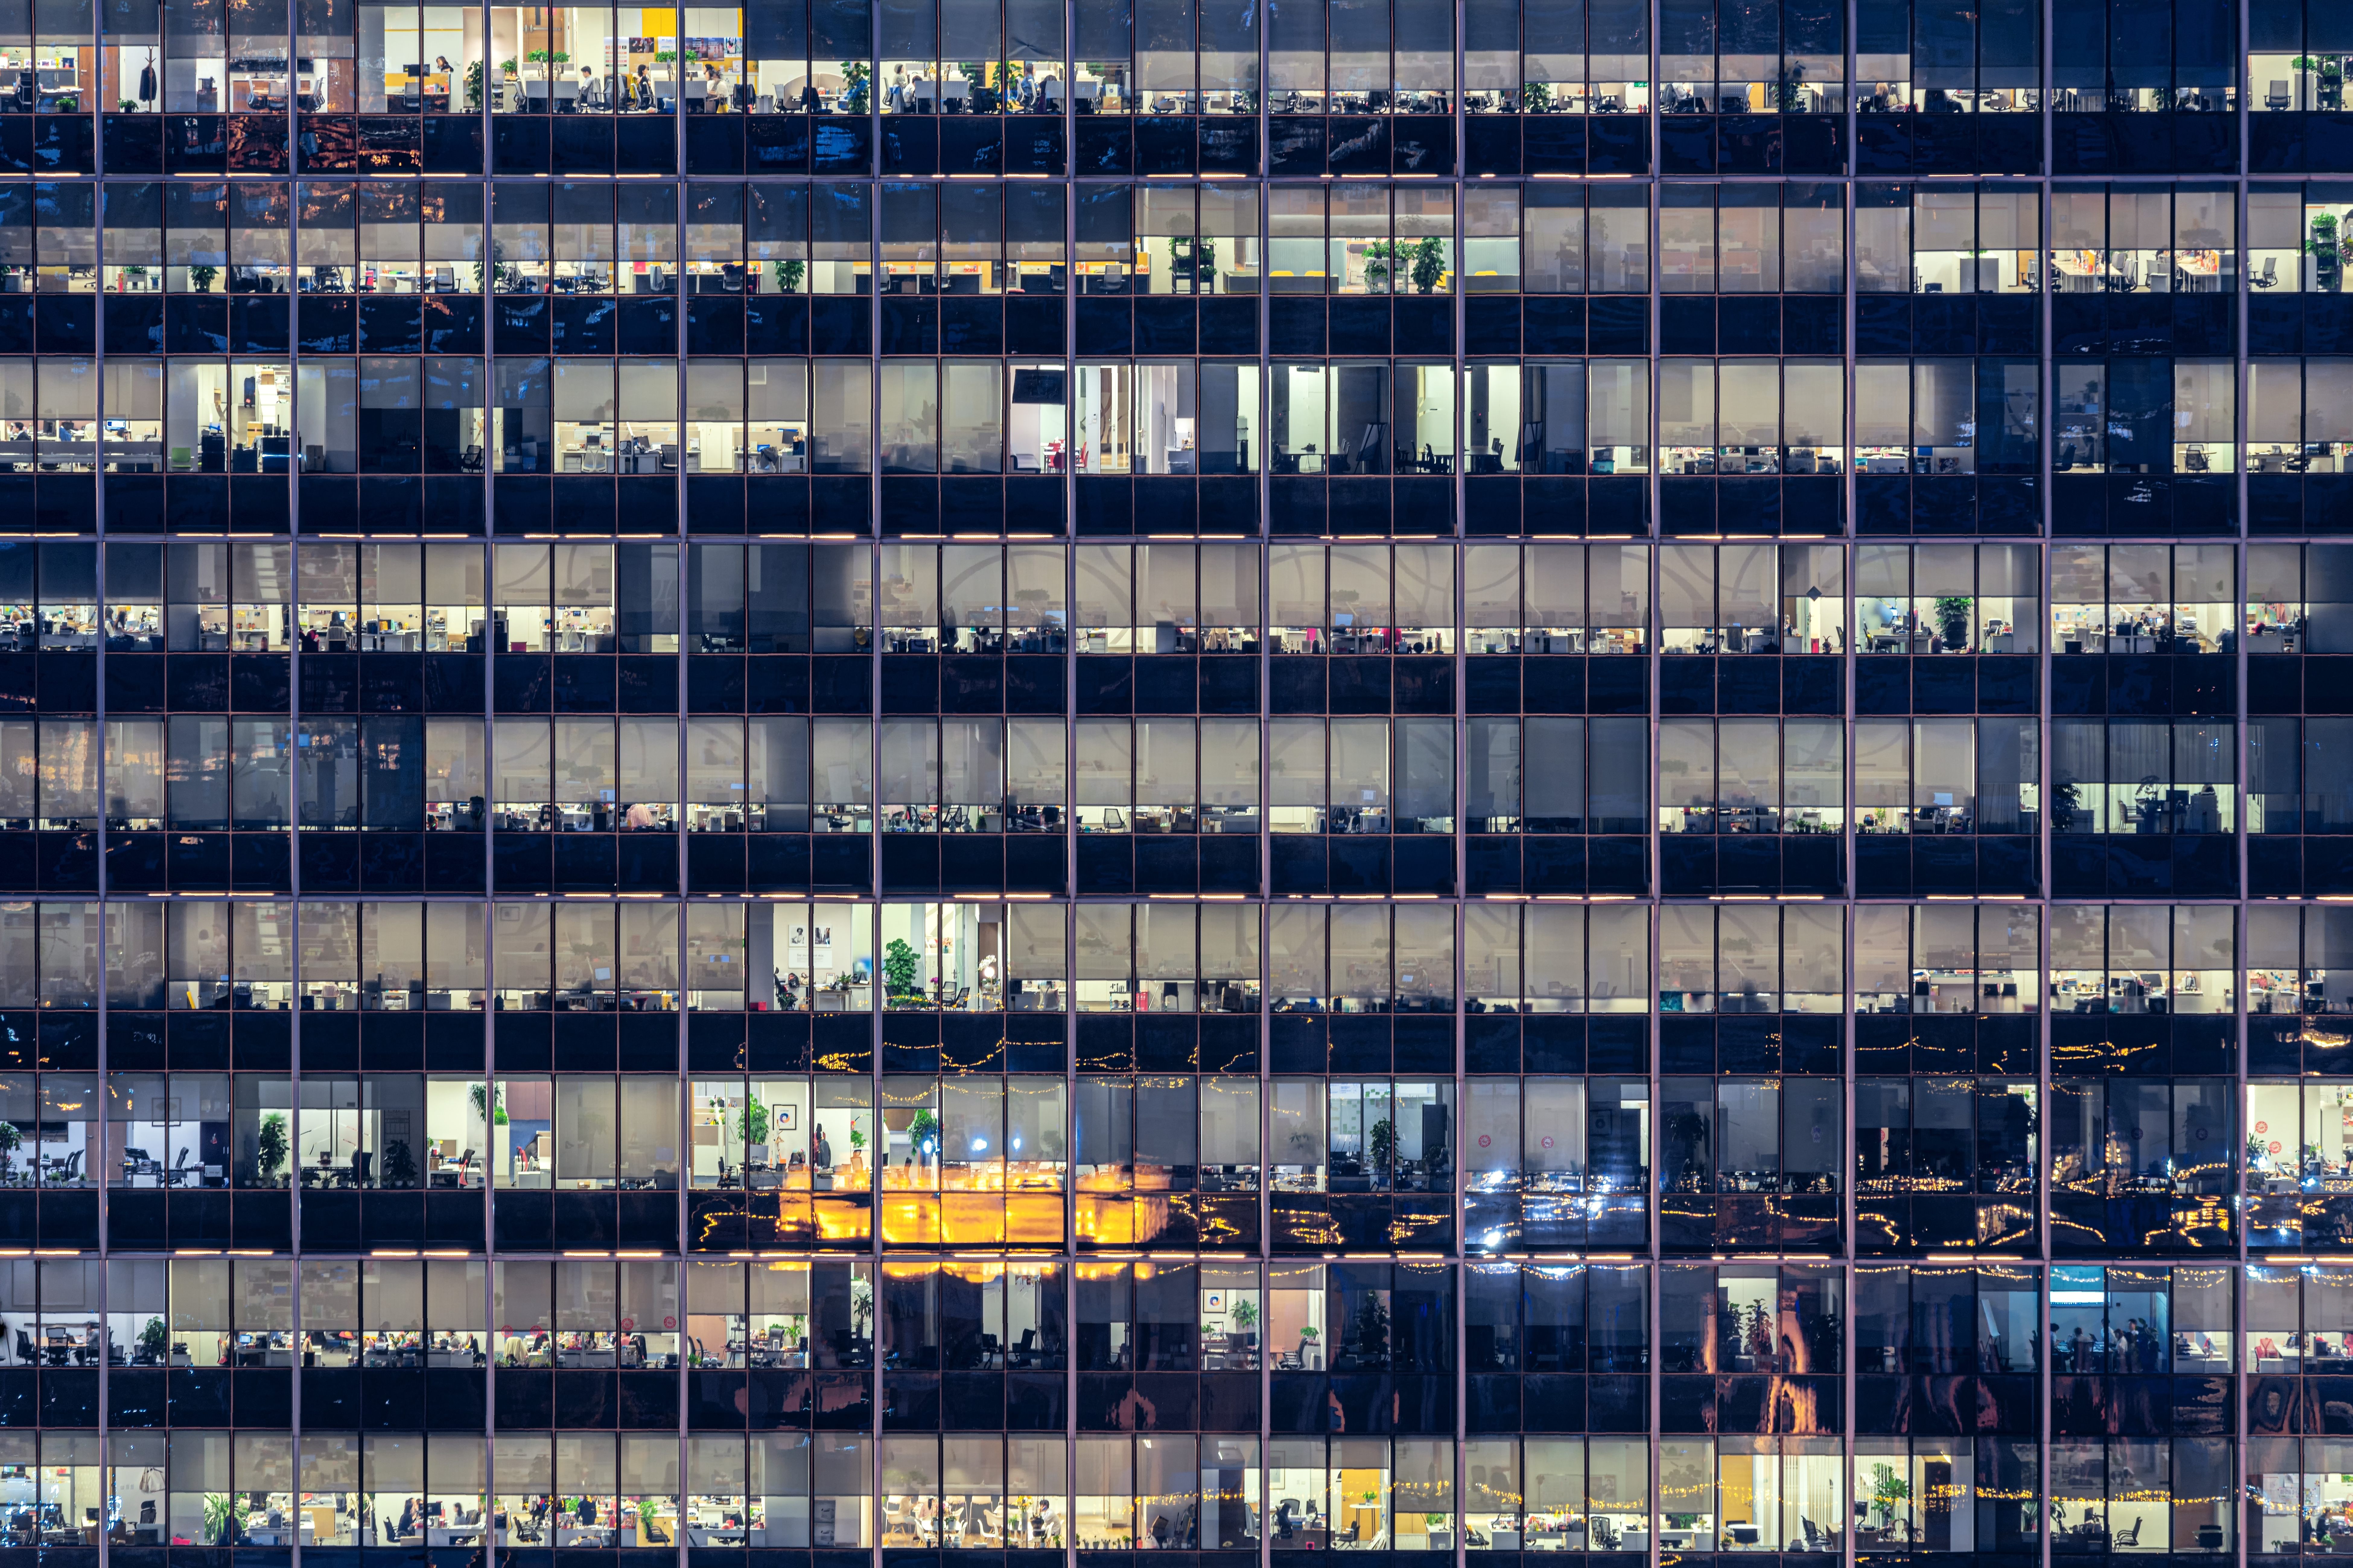 Office windows in the city